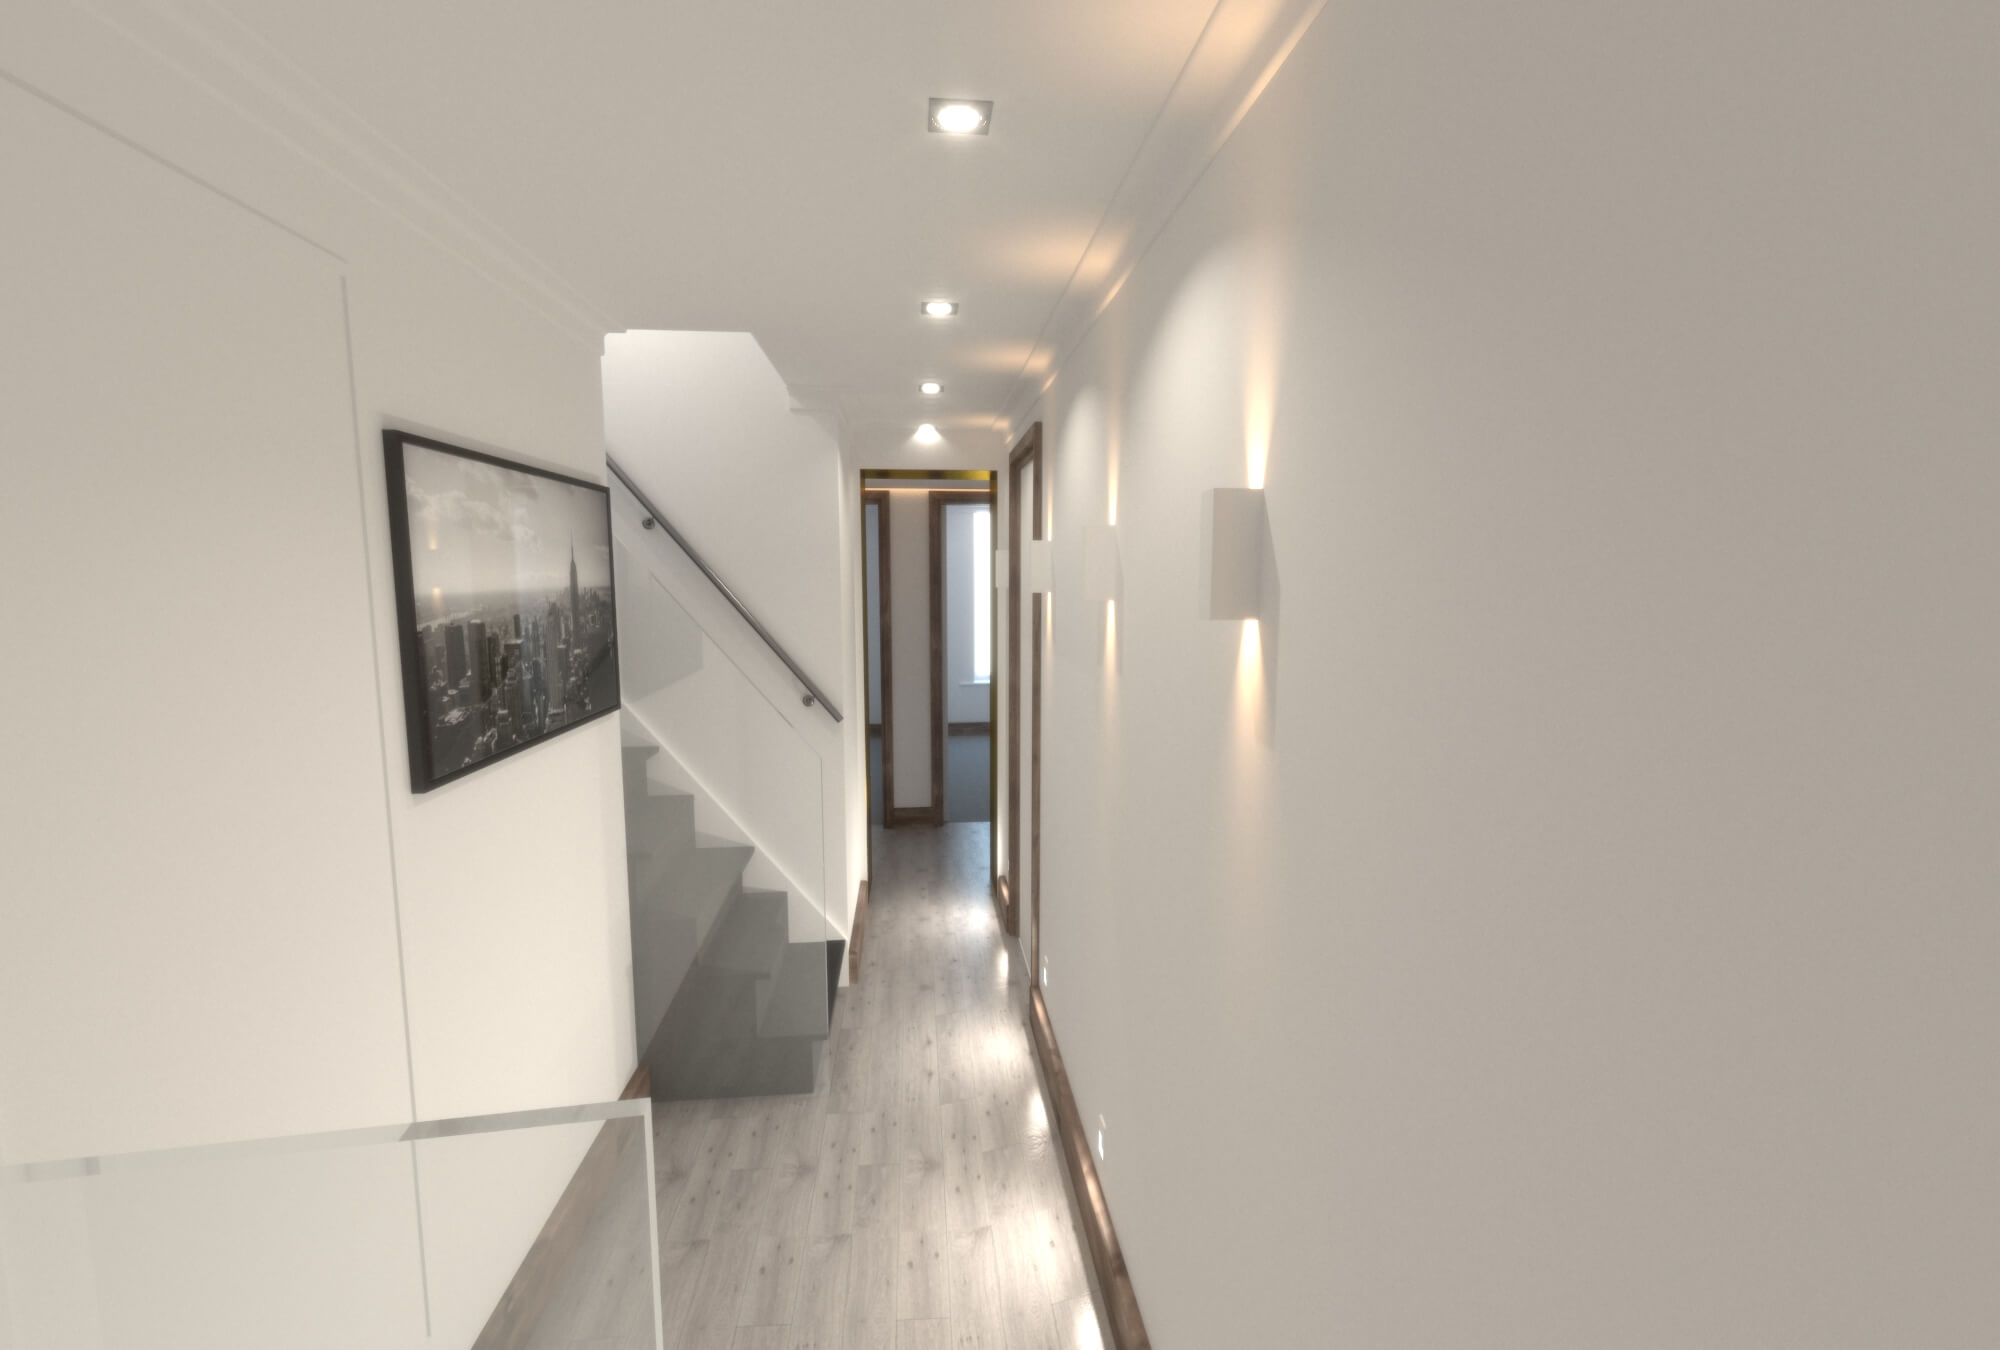 Hallway Approach - Visualisation